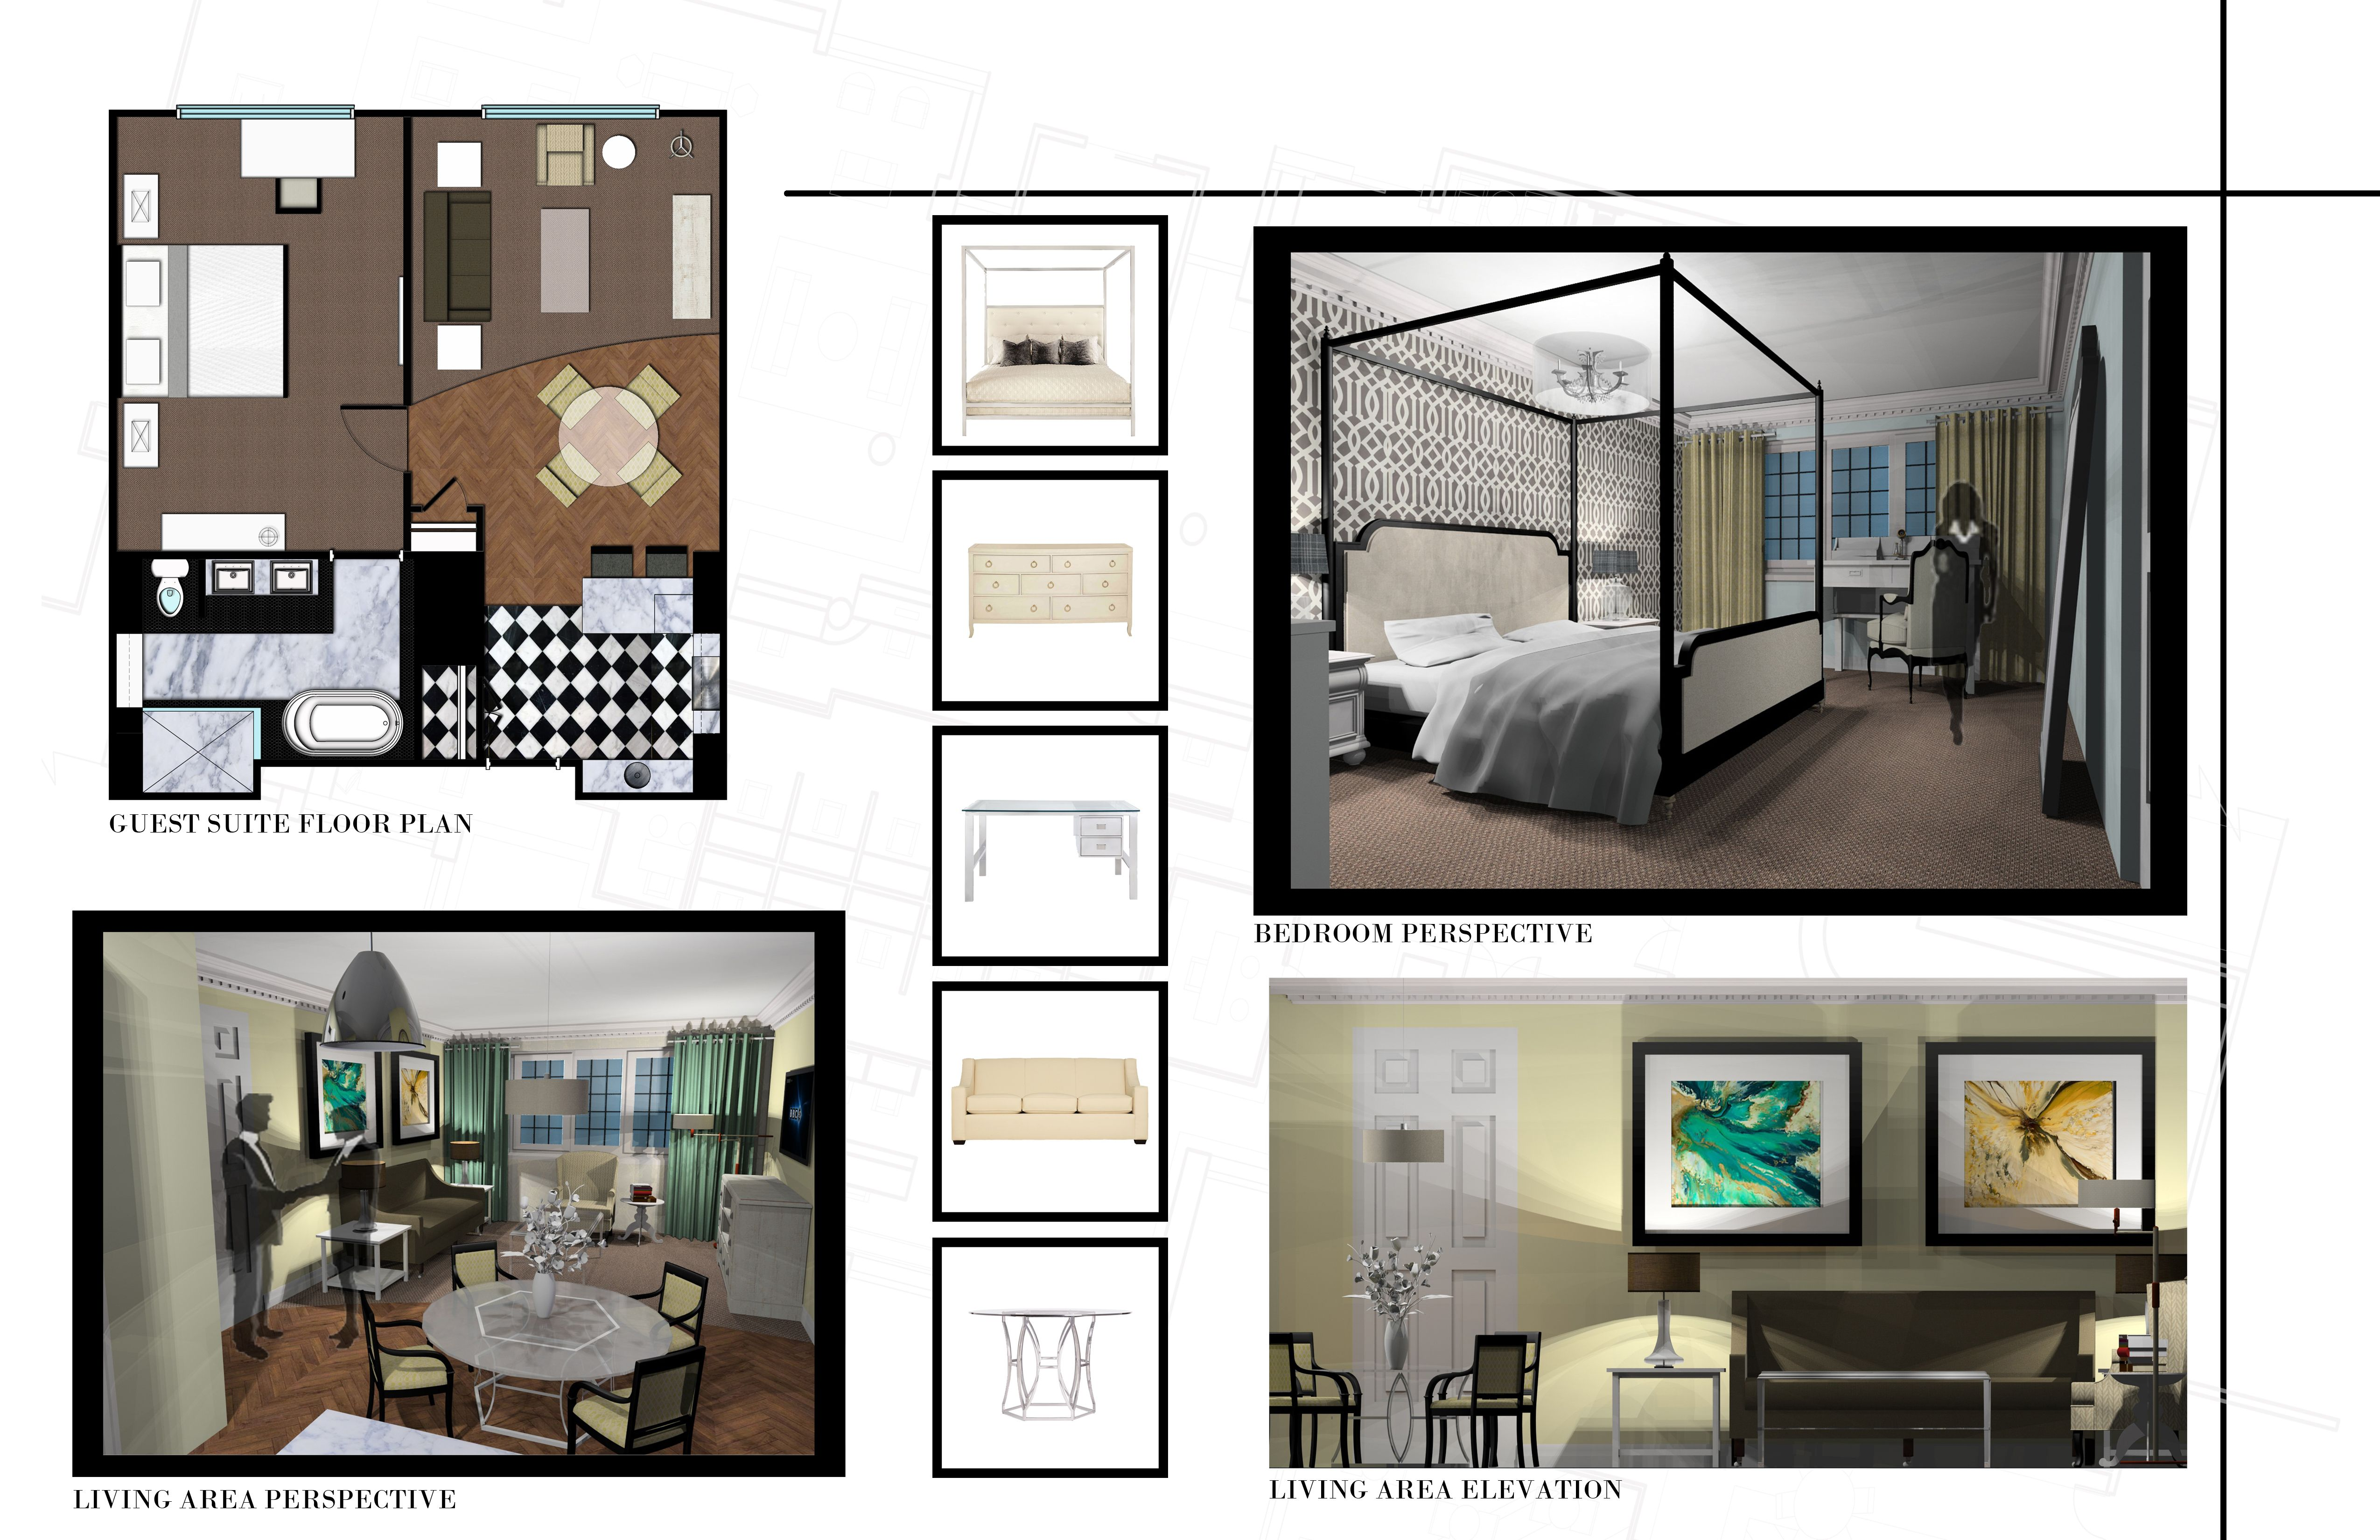 Superior Interior Design Portfolio Layouts   Google Search | Business Cards,  Resumes, Etc. | Pinterest | Portfolio Examples, Design Layouts And Design  Portfolio ...